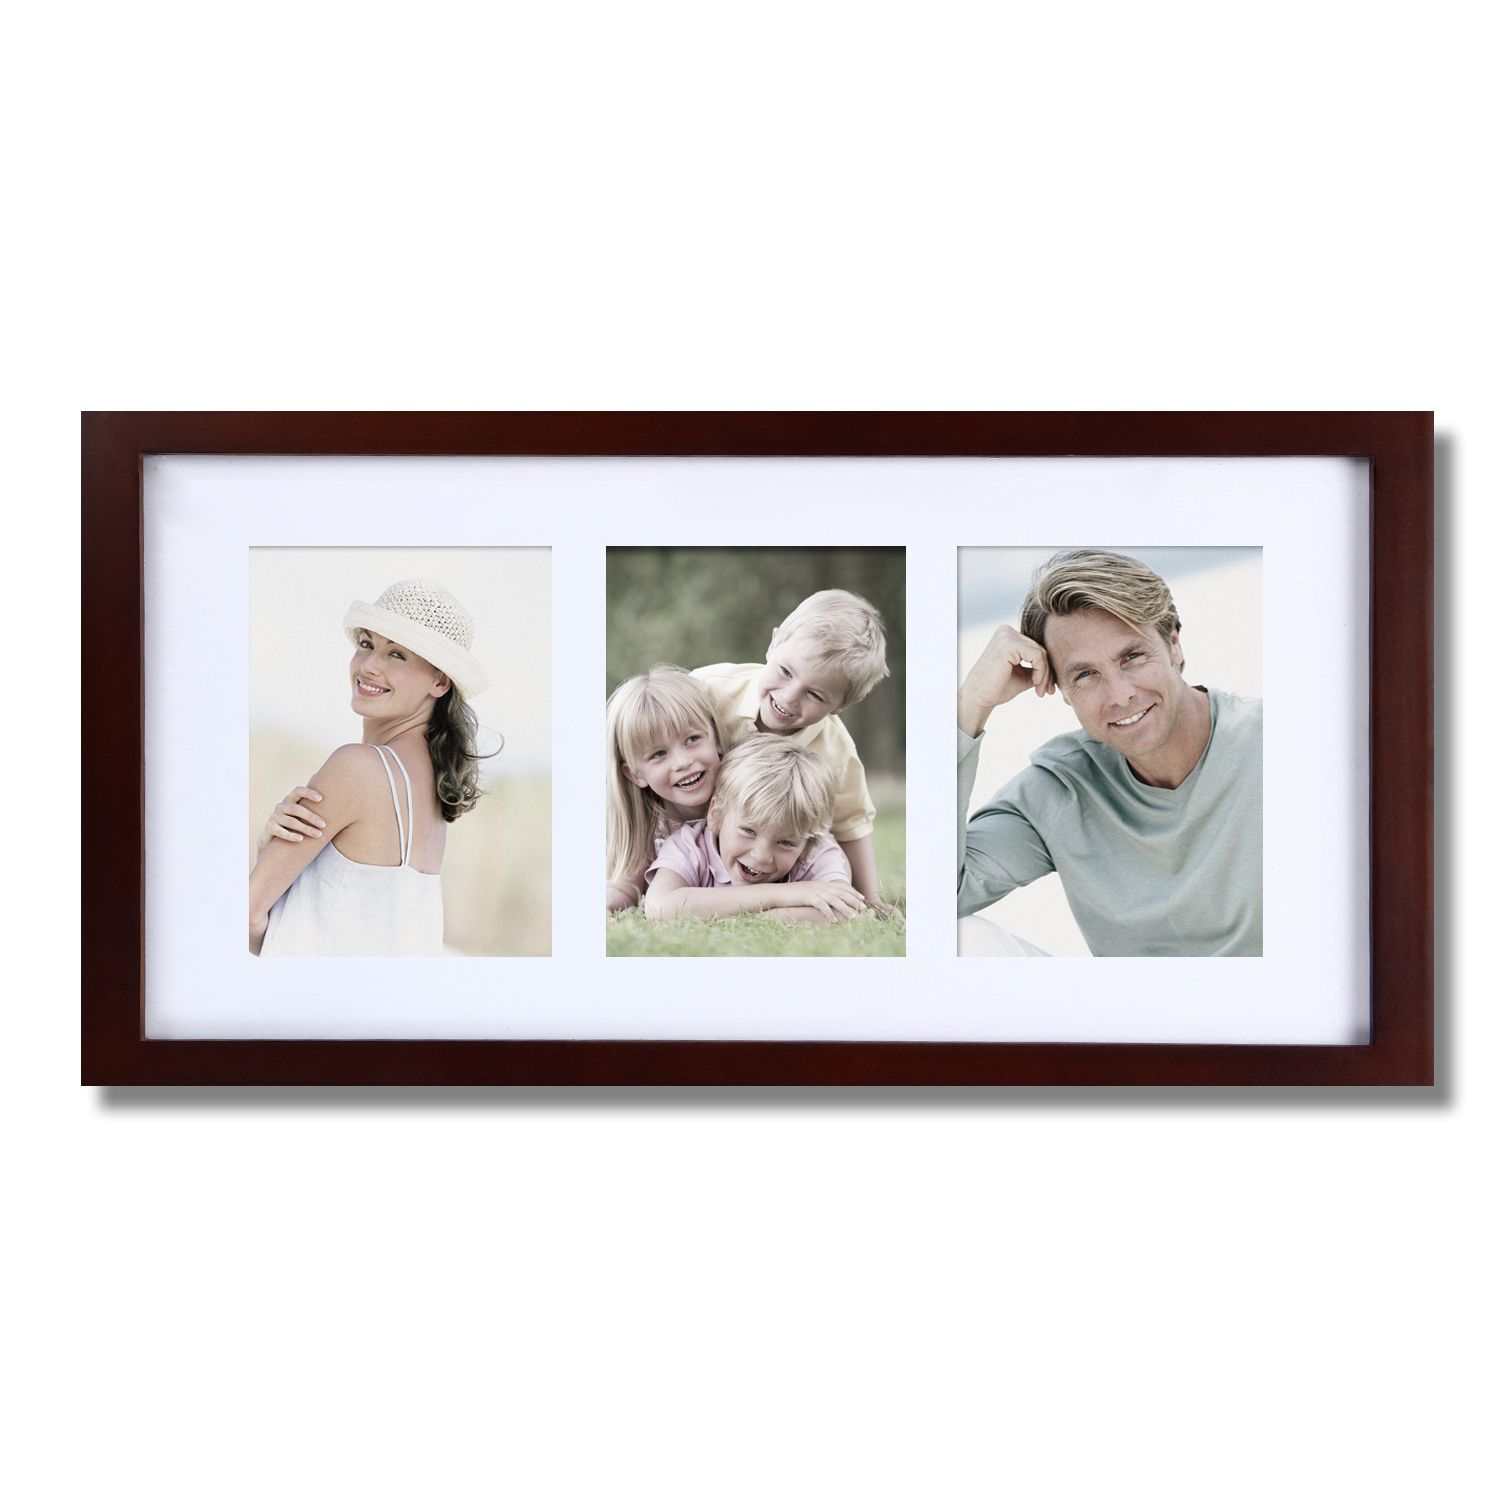 Adeco Decorative Walnut Color Wood Wall Hanging Picture Photo Frame ...